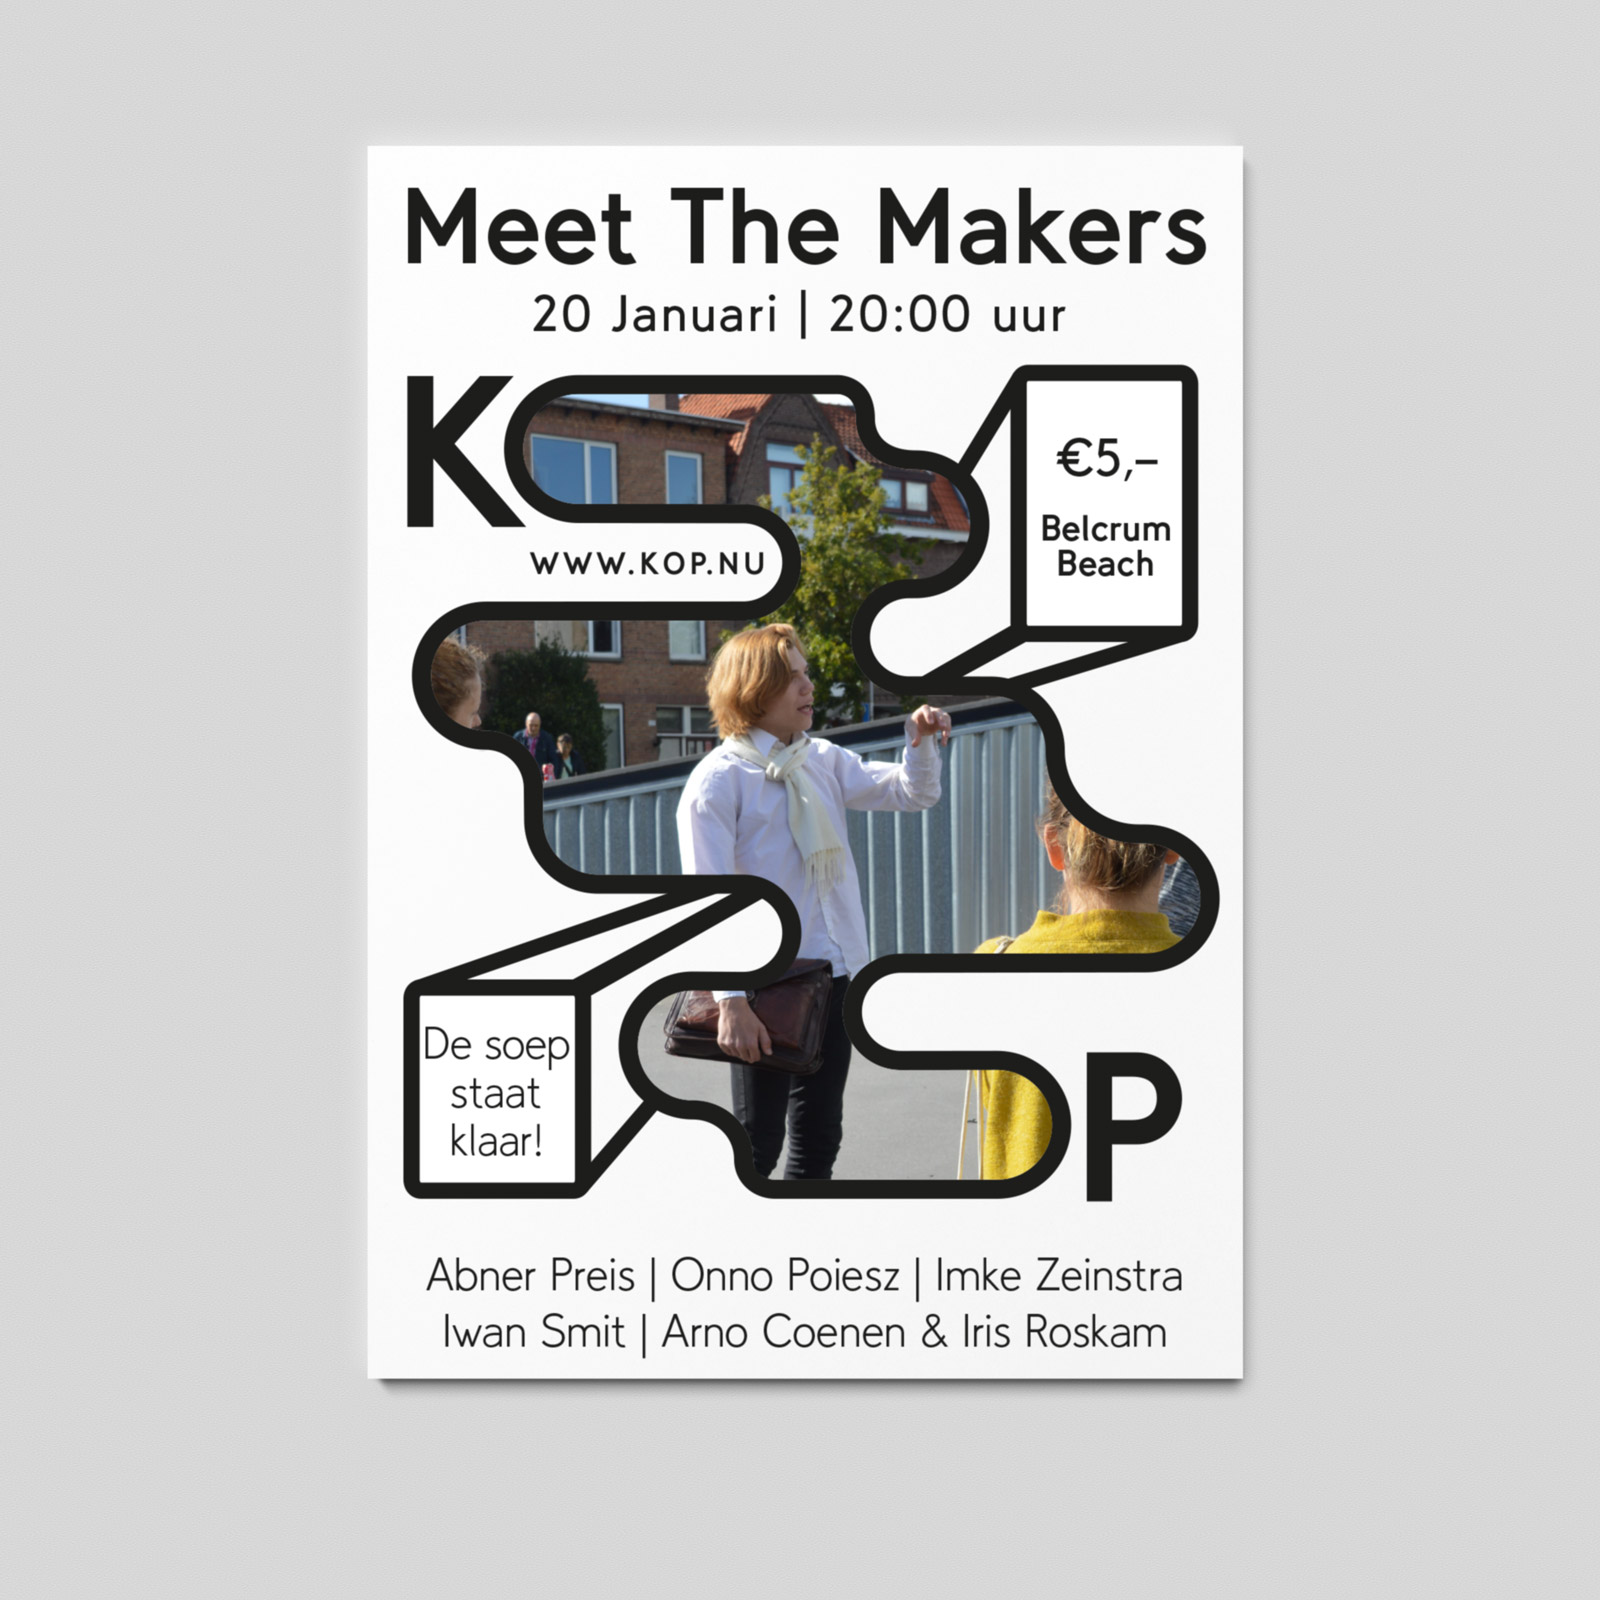 kop-uitingen_template-meet-the-makers-1